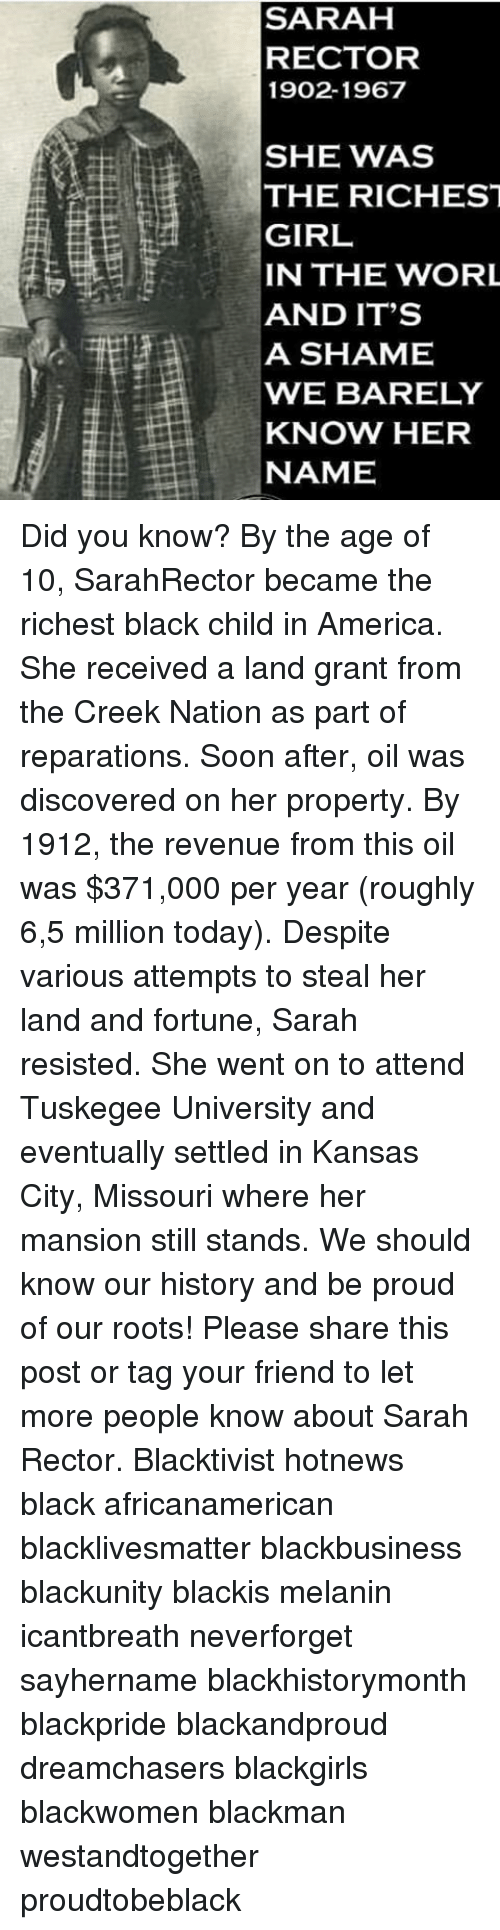 Memes, 🤖, and Shame: SARAH  RECTOR  1902-1967  SHE WAS  THE RICHEST  GIRL  IN THE WORL  AND IT'S  A SHAME  WE BARELY  KNOW HER  NAME Did you know? By the age of 10, SarahRector became the richest black child in America. She received a land grant from the Creek Nation as part of reparations. Soon after, oil was discovered on her property. By 1912, the revenue from this oil was $371,000 per year (roughly 6,5 million today). Despite various attempts to steal her land and fortune, Sarah resisted. She went on to attend Tuskegee University and eventually settled in Kansas City, Missouri where her mansion still stands. We should know our history and be proud of our roots! Please share this post or tag your friend to let more people know about Sarah Rector. Blacktivist hotnews black africanamerican blacklivesmatter blackbusiness blackunity blackis melanin icantbreath neverforget sayhername blackhistorymonth blackpride blackandproud dreamchasers blackgirls blackwomen blackman westandtogether proudtobeblack